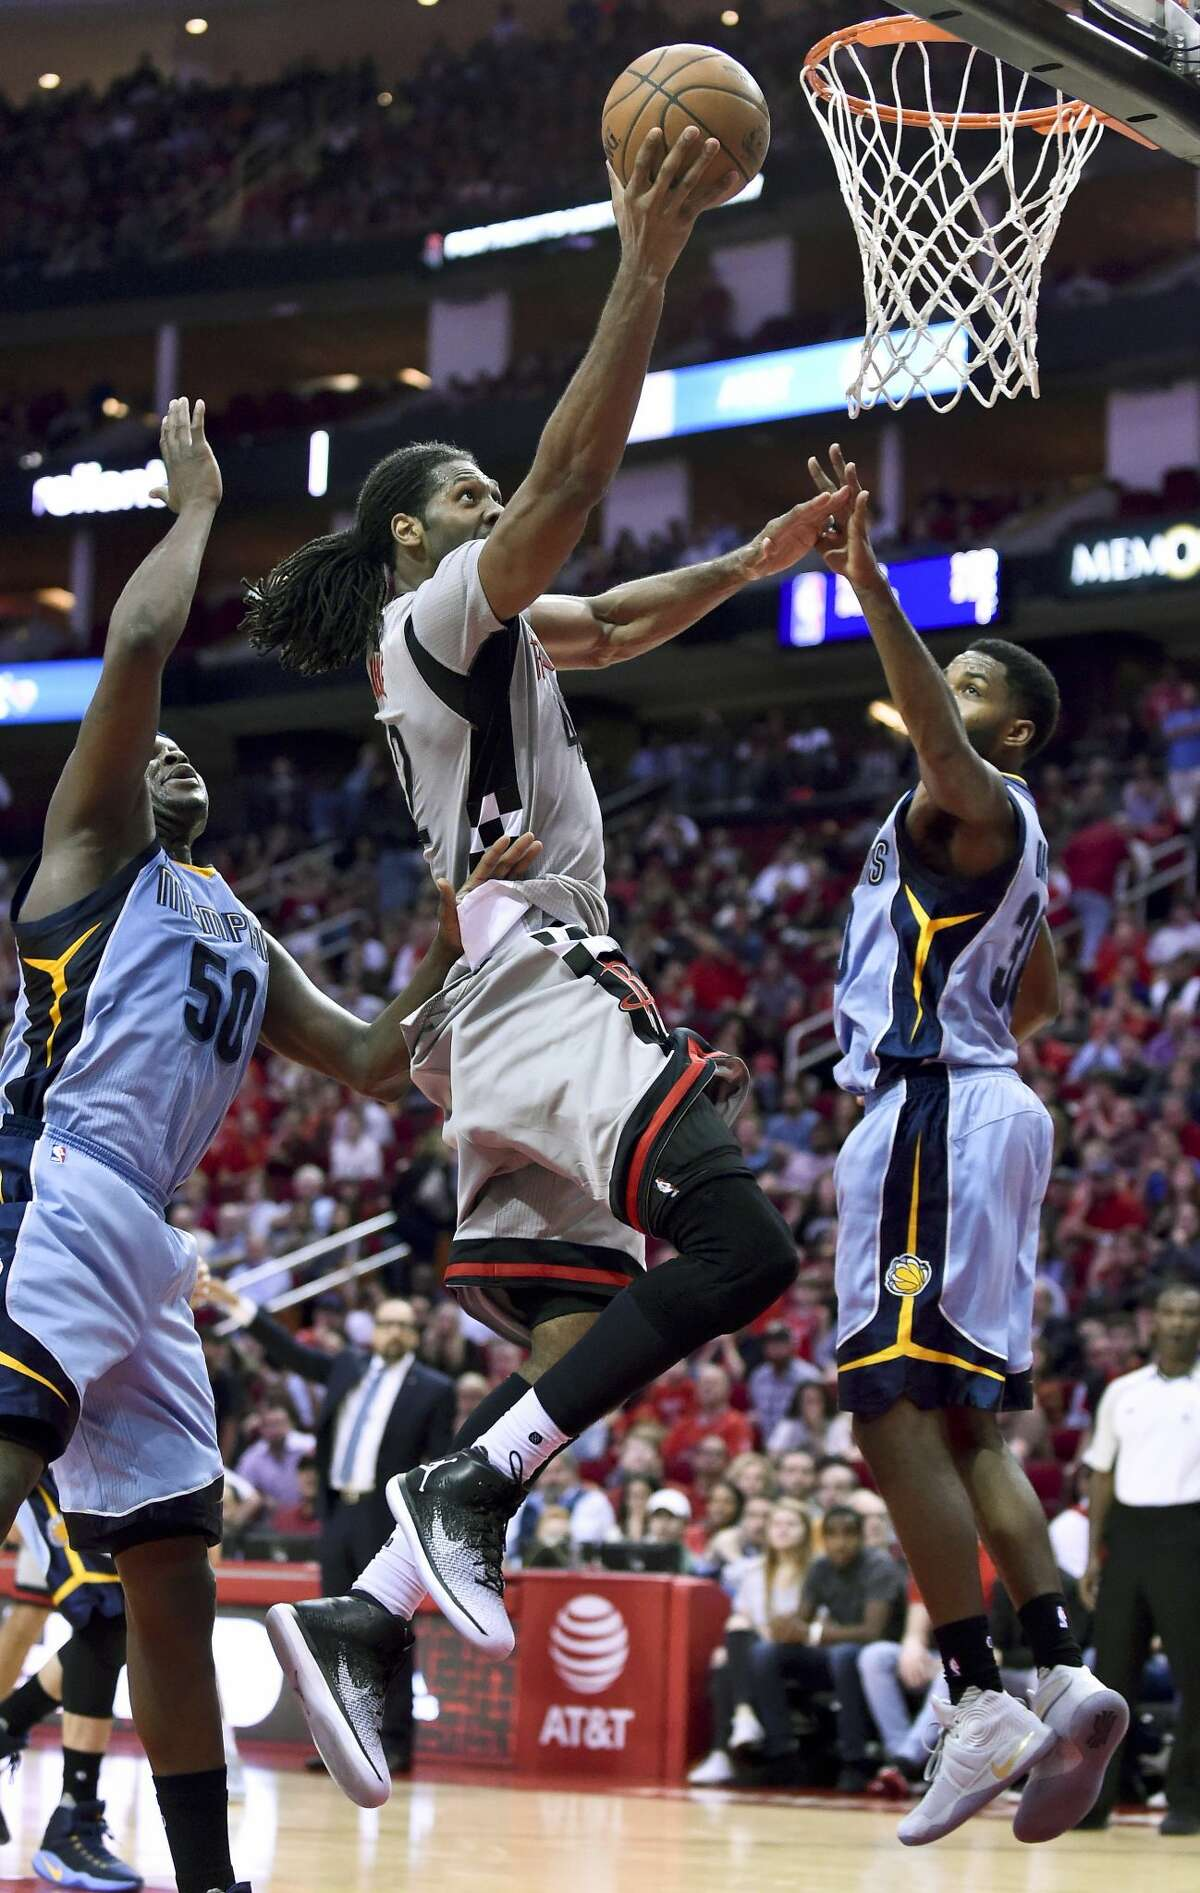 Houston Rockets center Nene Hilario, center, drives to the basket as Memphis Grizzlies forward Zach Randolph, left, and guard Troy Daniels defend in the second half of an NBA basketball game, Friday, Jan. 13, 2017, in Houston. Memphis won the game, 110-105. (AP Photo/Eric Christian Smith)